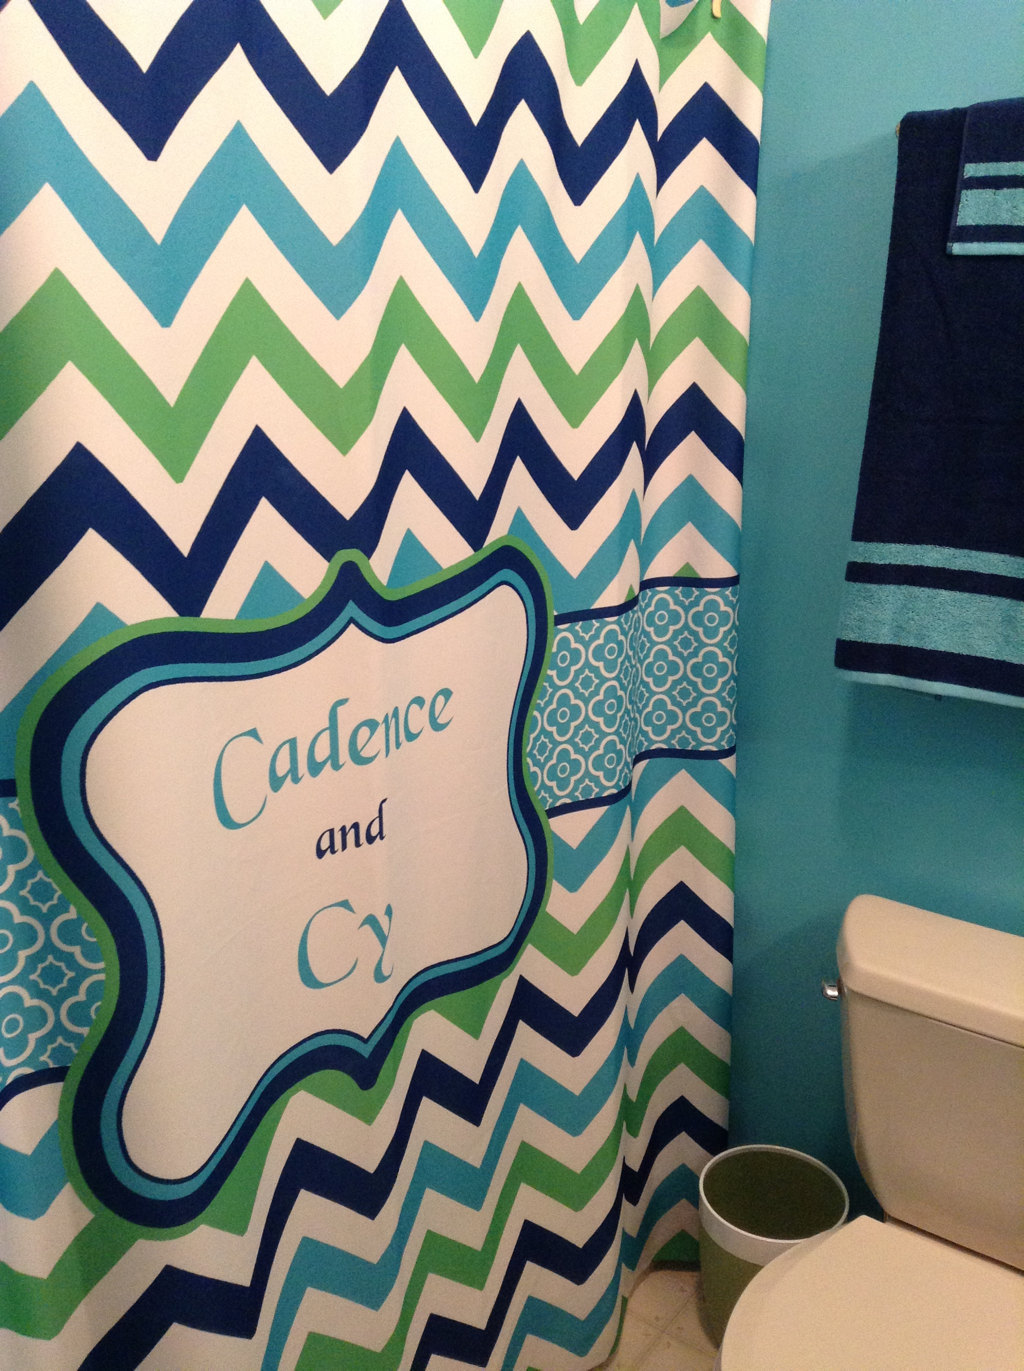 Shower Curtain - Multi Color Lime, Navy, Turquoise and White - Accent Any colors image 3